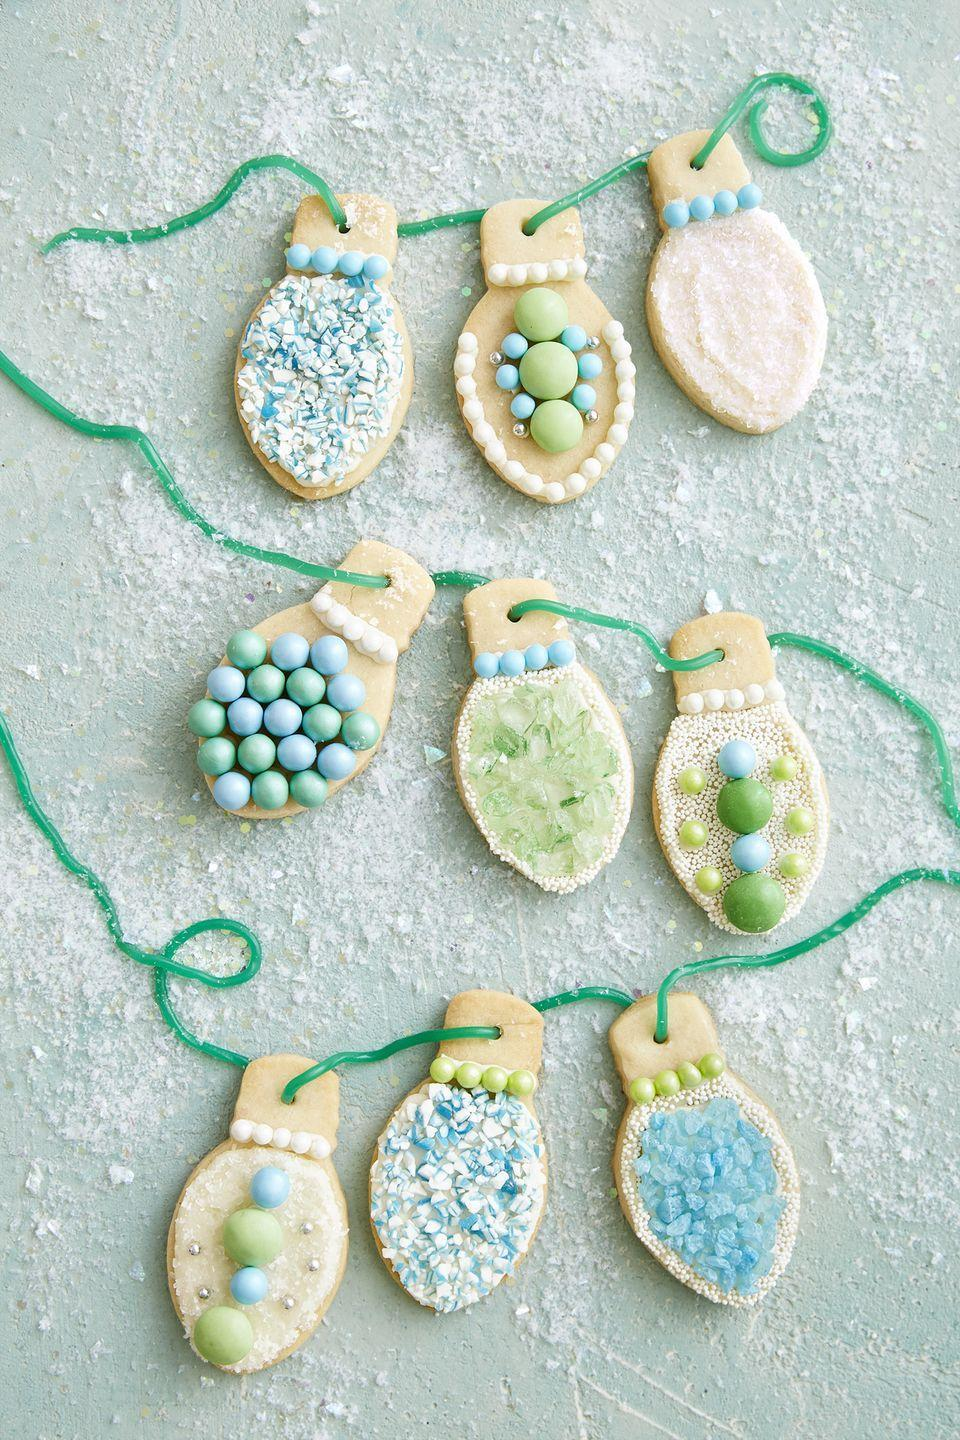 """<p>An assortment of crushed starlight mints, rock candy, dragees, M&M's, and string licorice comes together for some beautiful bulbs. Varying amounts of texture add even more interest.</p><p><strong><a href=""""https://www.countryliving.com/food-drinks/recipes/a40523/christmas-light-sugar-cookies-recipe/"""" rel=""""nofollow noopener"""" target=""""_blank"""" data-ylk=""""slk:Get the recipe"""" class=""""link rapid-noclick-resp"""">Get the recipe</a>.</strong></p><p><a class=""""link rapid-noclick-resp"""" href=""""https://www.amazon.com/dp/B076FFD5RH/?tag=syn-yahoo-20&ascsubtag=%5Bartid%7C10050.g.647%5Bsrc%7Cyahoo-us"""" rel=""""nofollow noopener"""" target=""""_blank"""" data-ylk=""""slk:SHOP COOKIE CUTTERS"""">SHOP COOKIE CUTTERS</a></p>"""